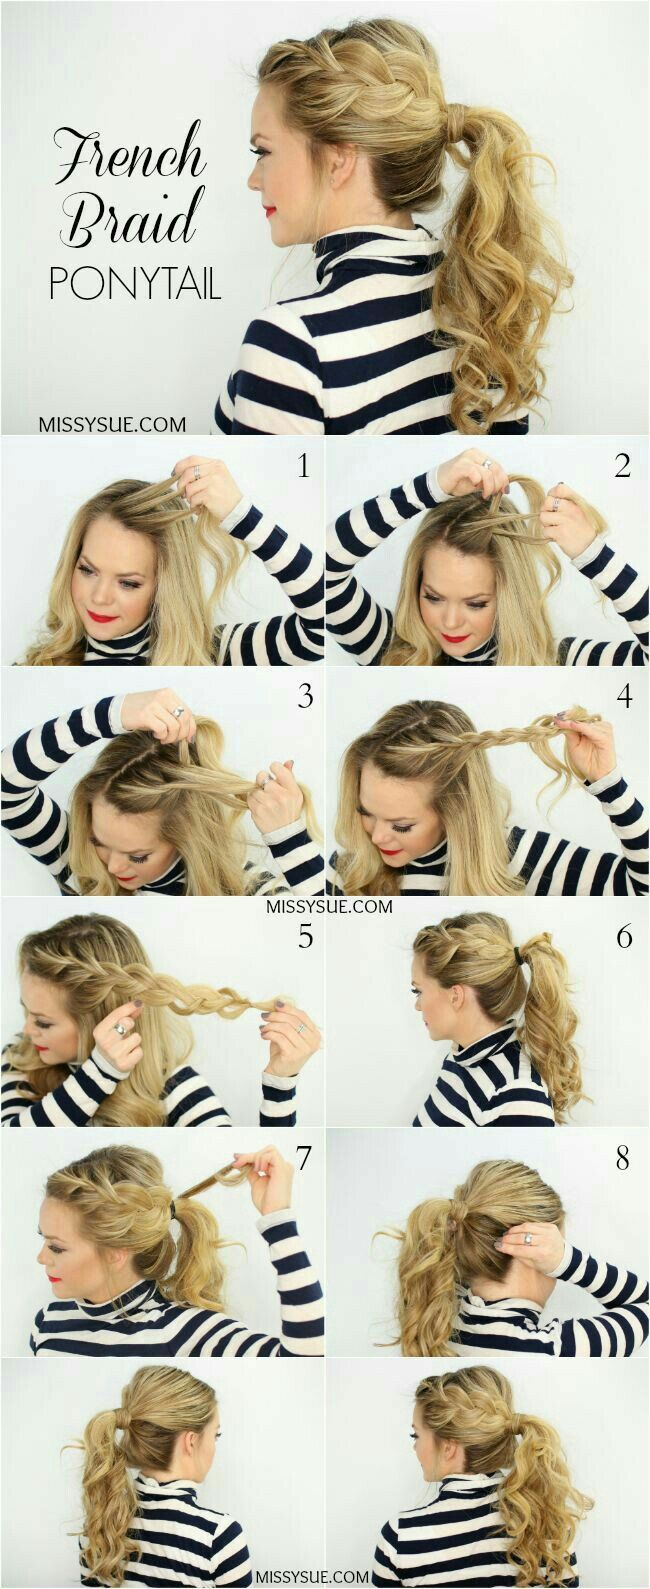 best hair cuts face shapes images on pinterest